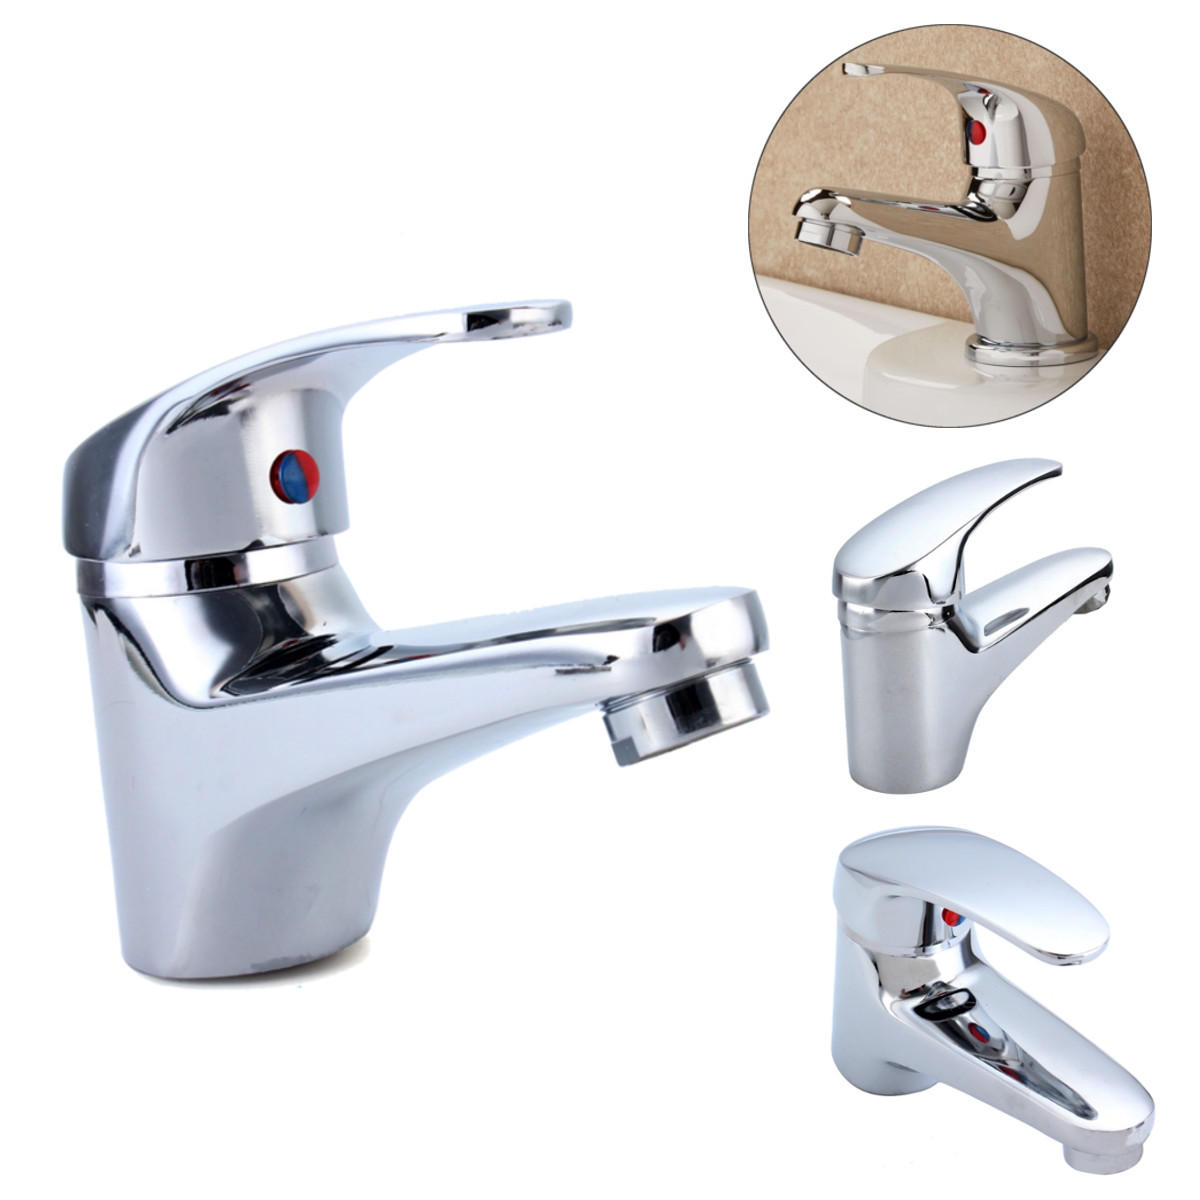 Bathroom Sink Faucets Brass Bathroom Sink Faucet Hot Cold Faucet